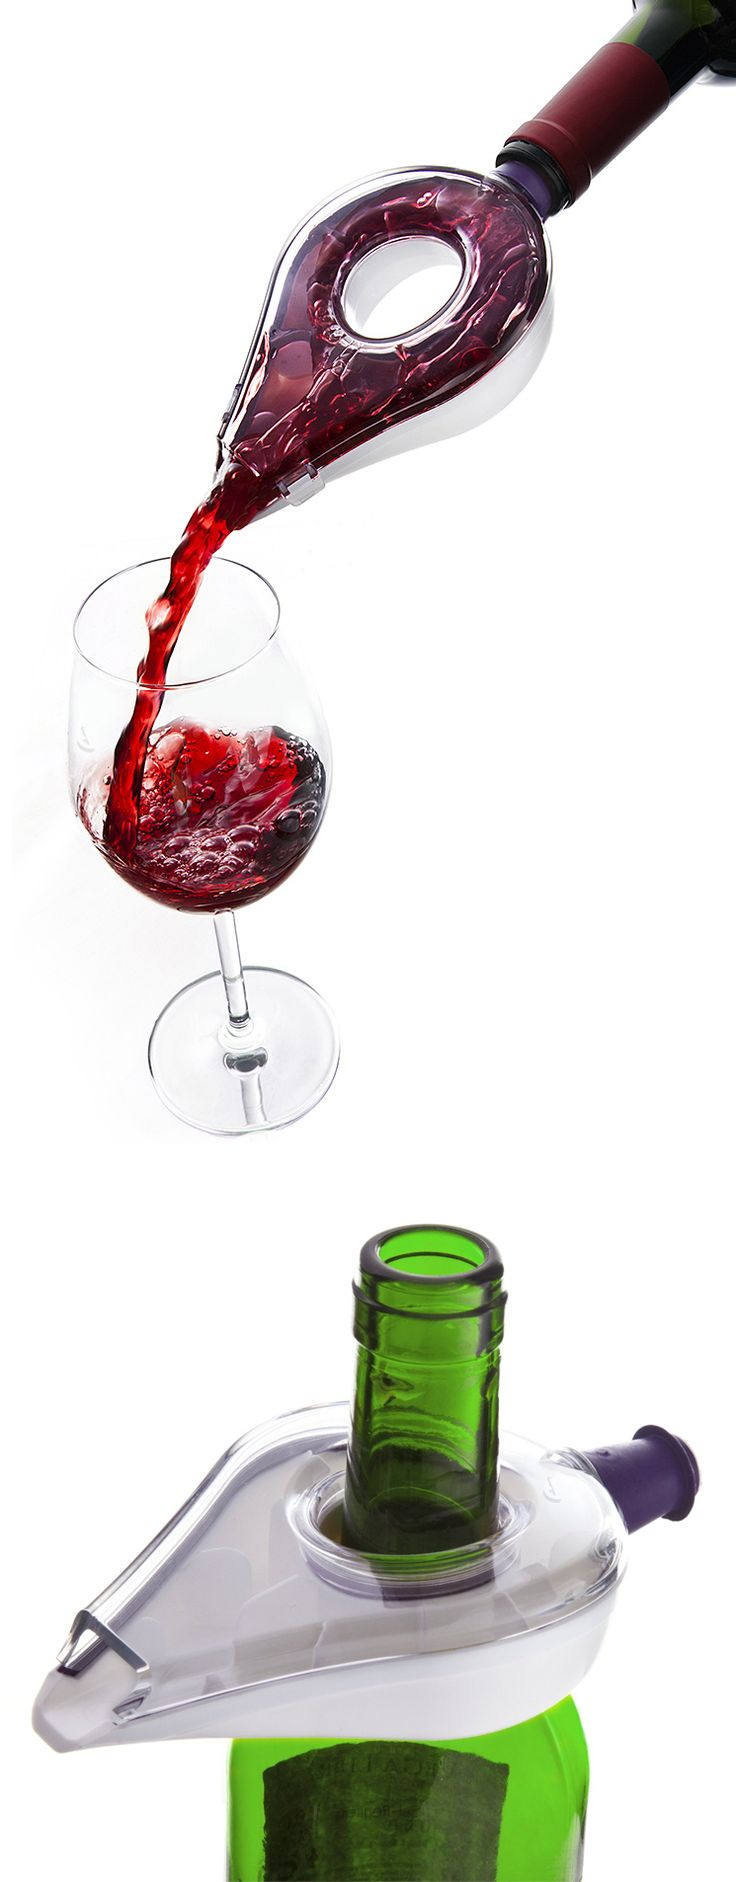 Wine Aerator // fits neatly on top of the bottle when not in use #product_design